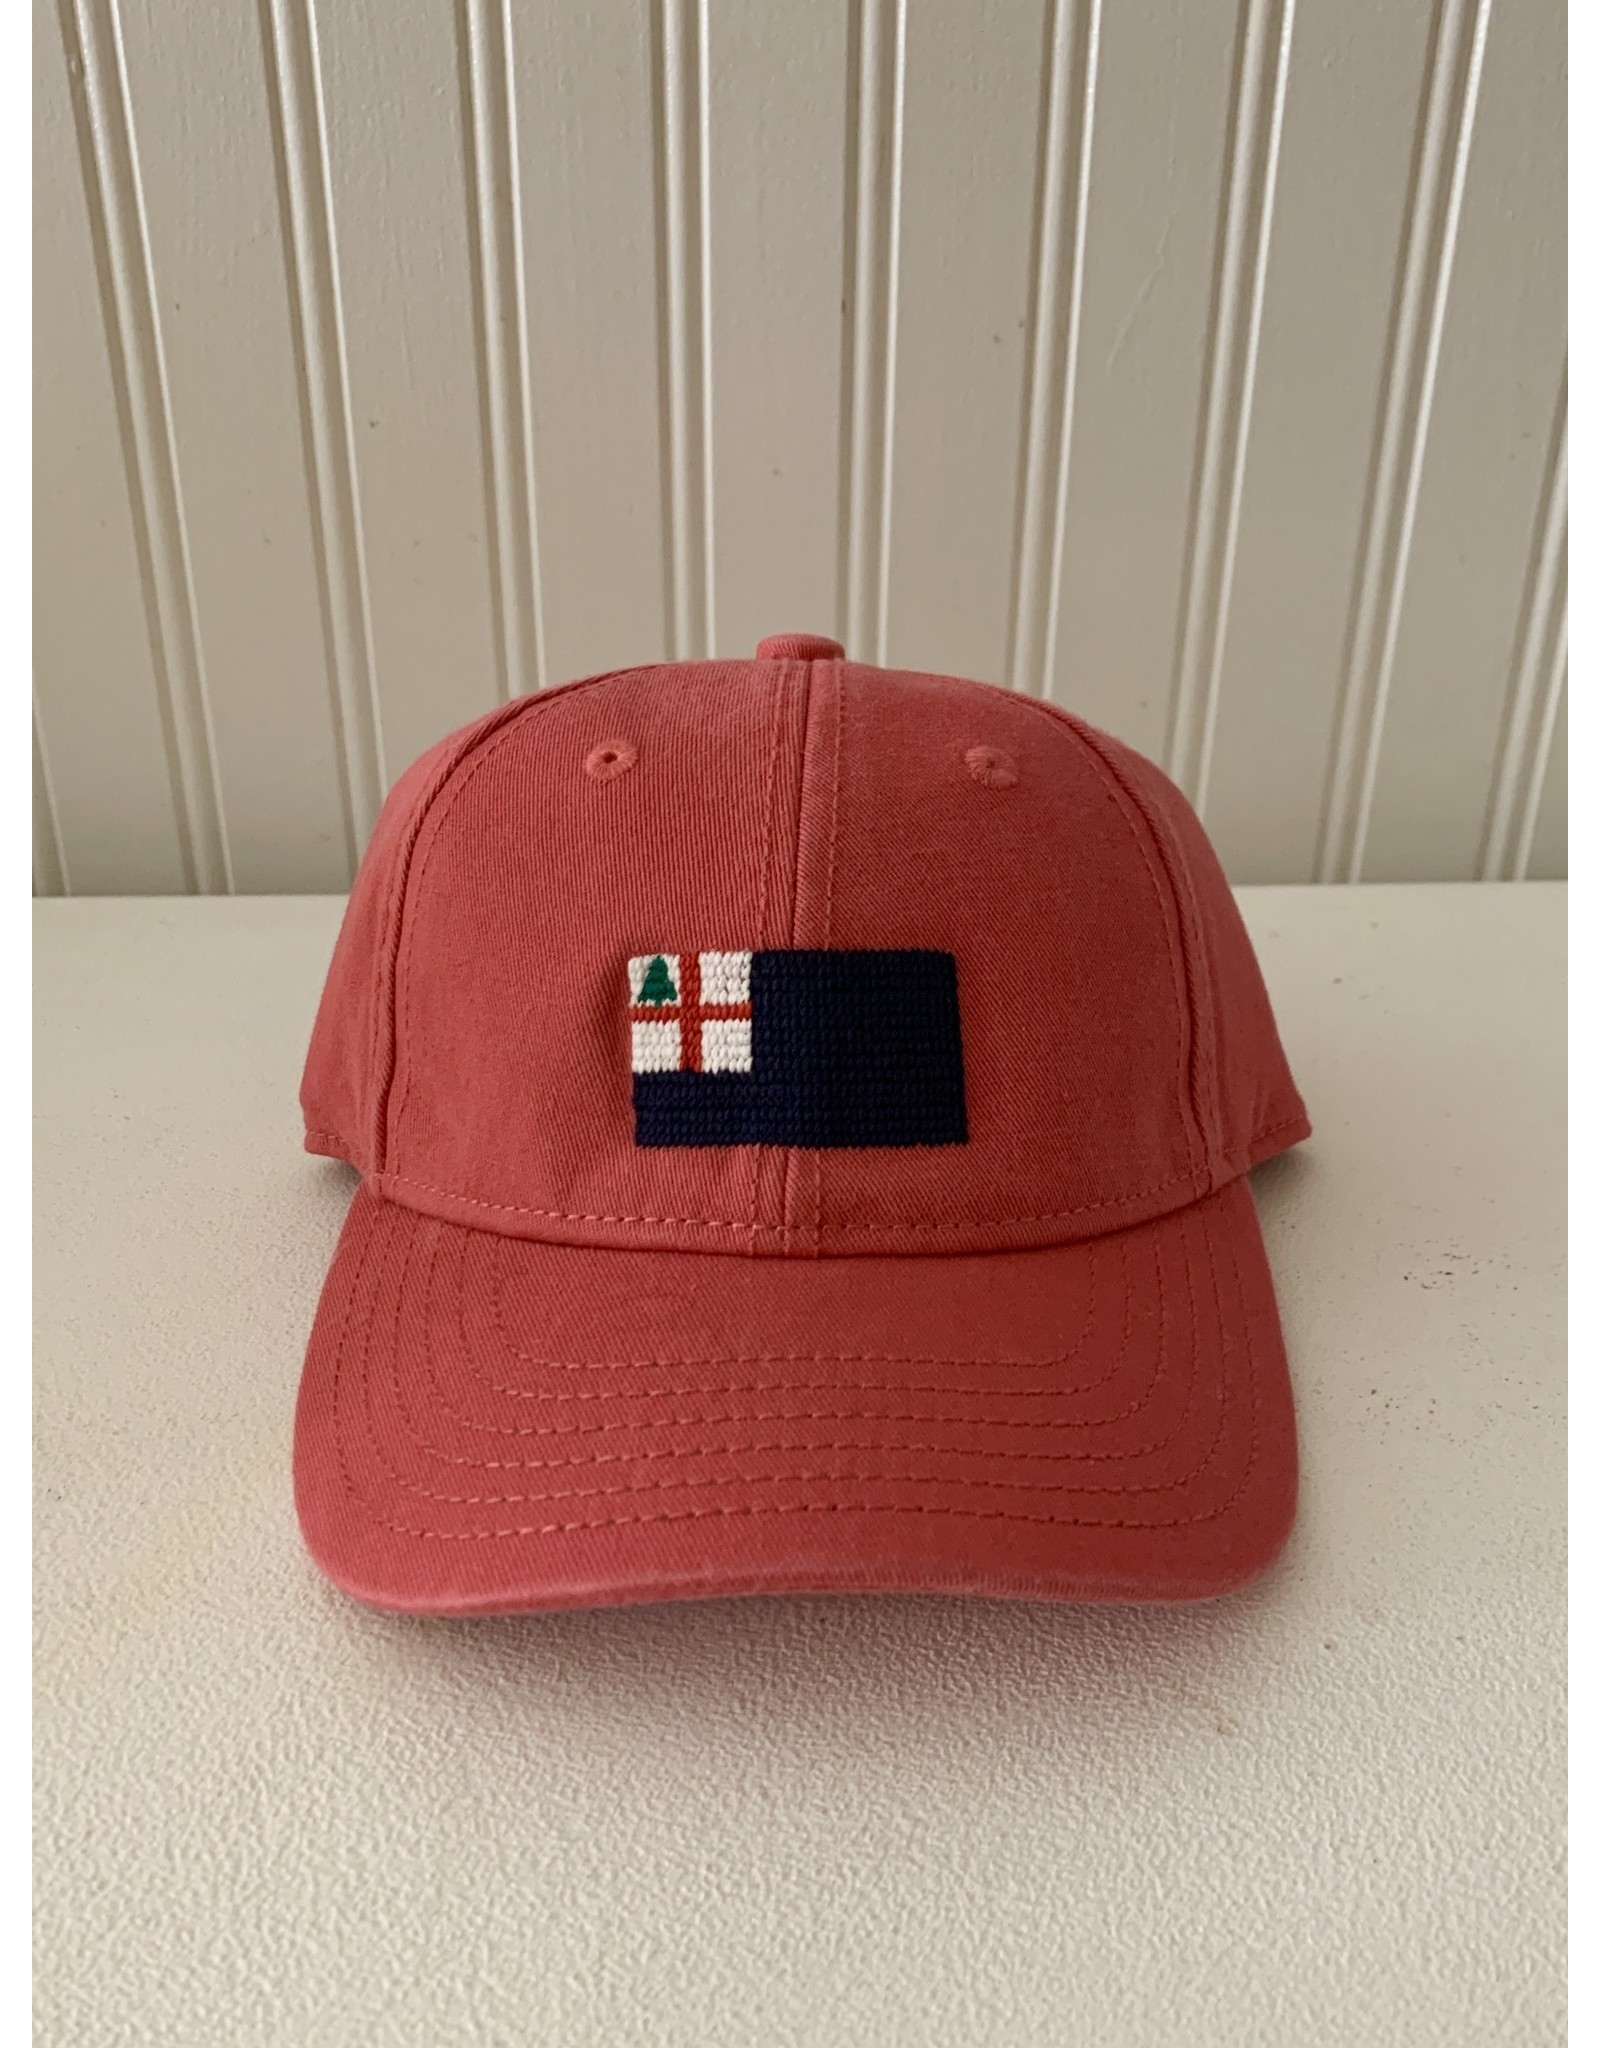 Harding Lane Bunker Hill Flag Hat - Adult